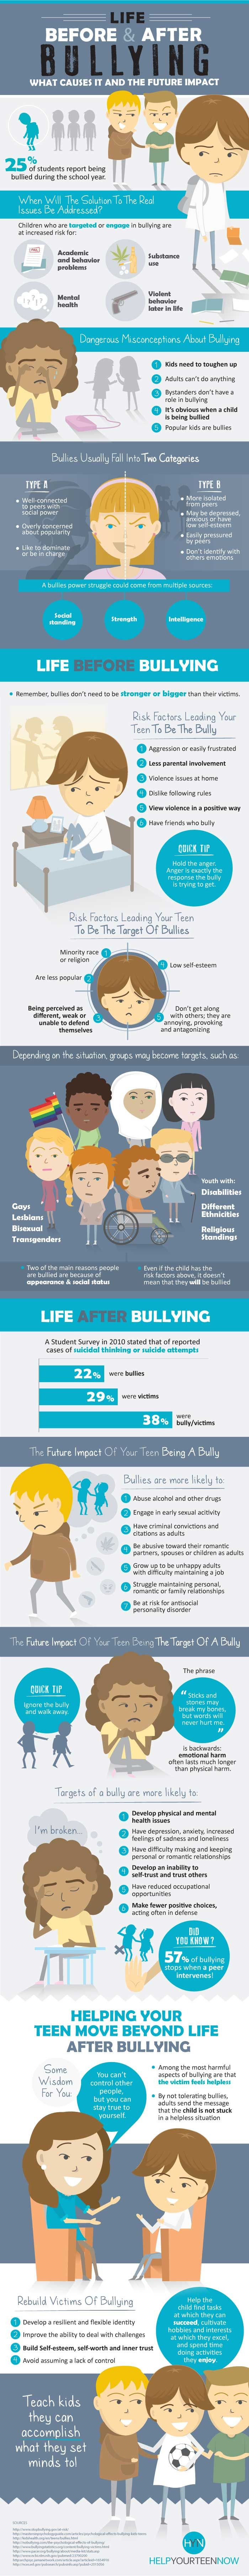 The issues caused by bullying have always been a threat to the well-being of teenagers and children on both sides. Bullying impacts both the victim and the bully for years to come. In the infographic below, we've concluded that the events leading up to a teen becoming a bully is just as important to understand as the issues caused afterwards.